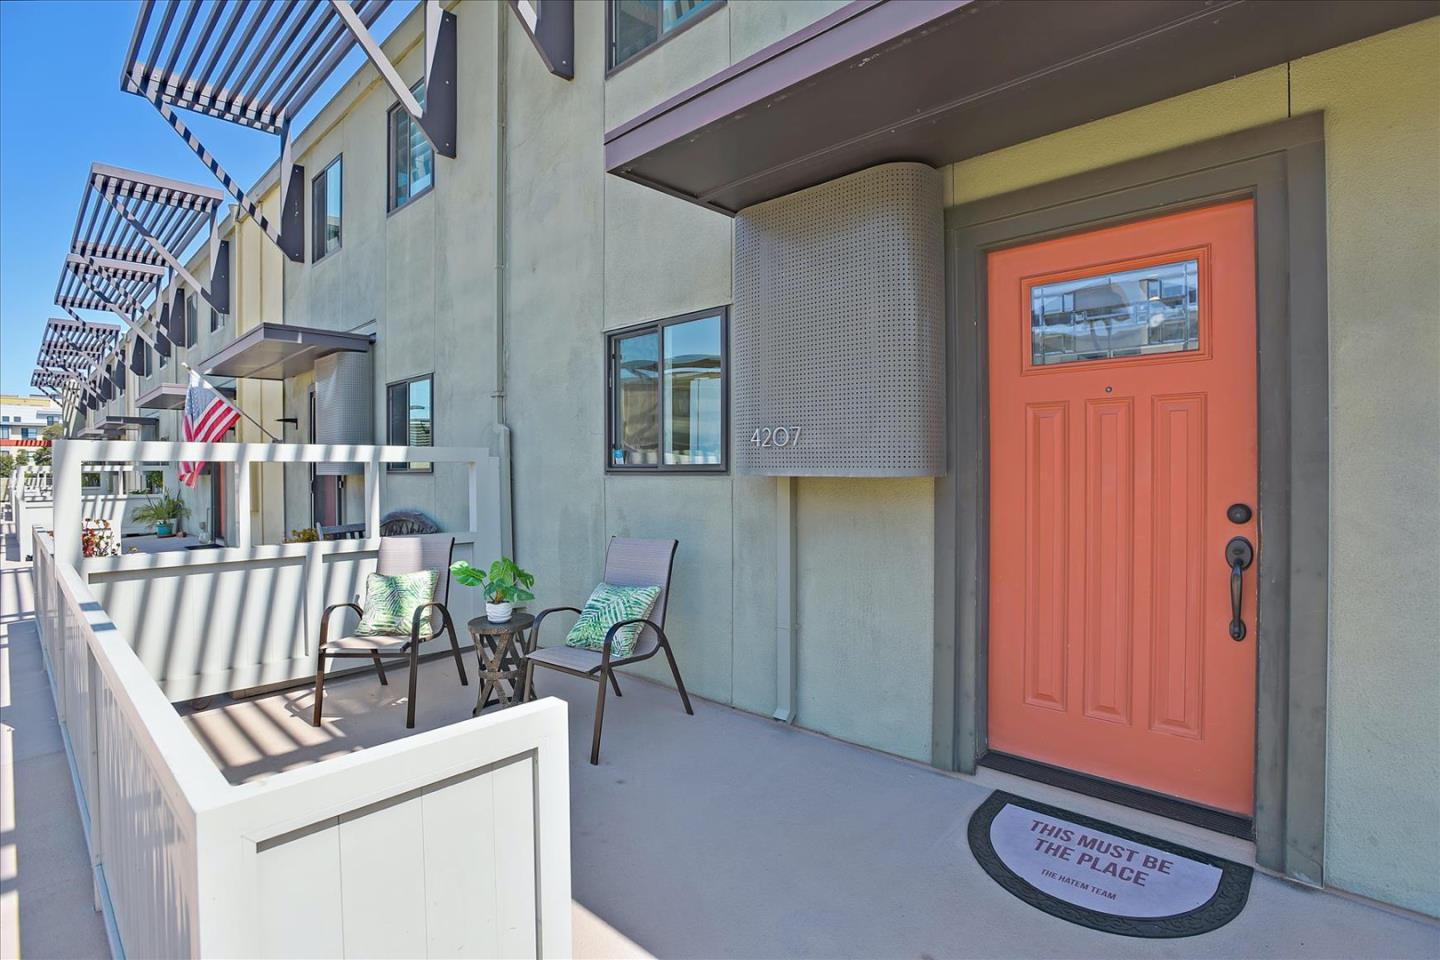 AWESOME BAY AREA LOCATION! Condo/ 2 story Town Home Style! Move in ready and INVESTOR FRIENDLY! Spacious and bright,2 bedrooms and 1.5 bath.Living/dining combo opens to a large size balcony area overlooking green belt. Brand new kitchen appliances and stone counter tops. Updated half bath. Double pane windows and sliding door. In unit washer and dryer hook ups. extra storage.1 Car gated parking with plenty of guest parking. EXCELLENT SCHOOLS and MUCH more! Walk to Starbucks, shops, parks, restaurants, Costco,  Visa, JCC and Brewer Island Elementary. Short drive to Gilead, Sciences & Illumina Inc. Easy access to 92/101/280 Hwys. Minutes to SFO & SJ airports.